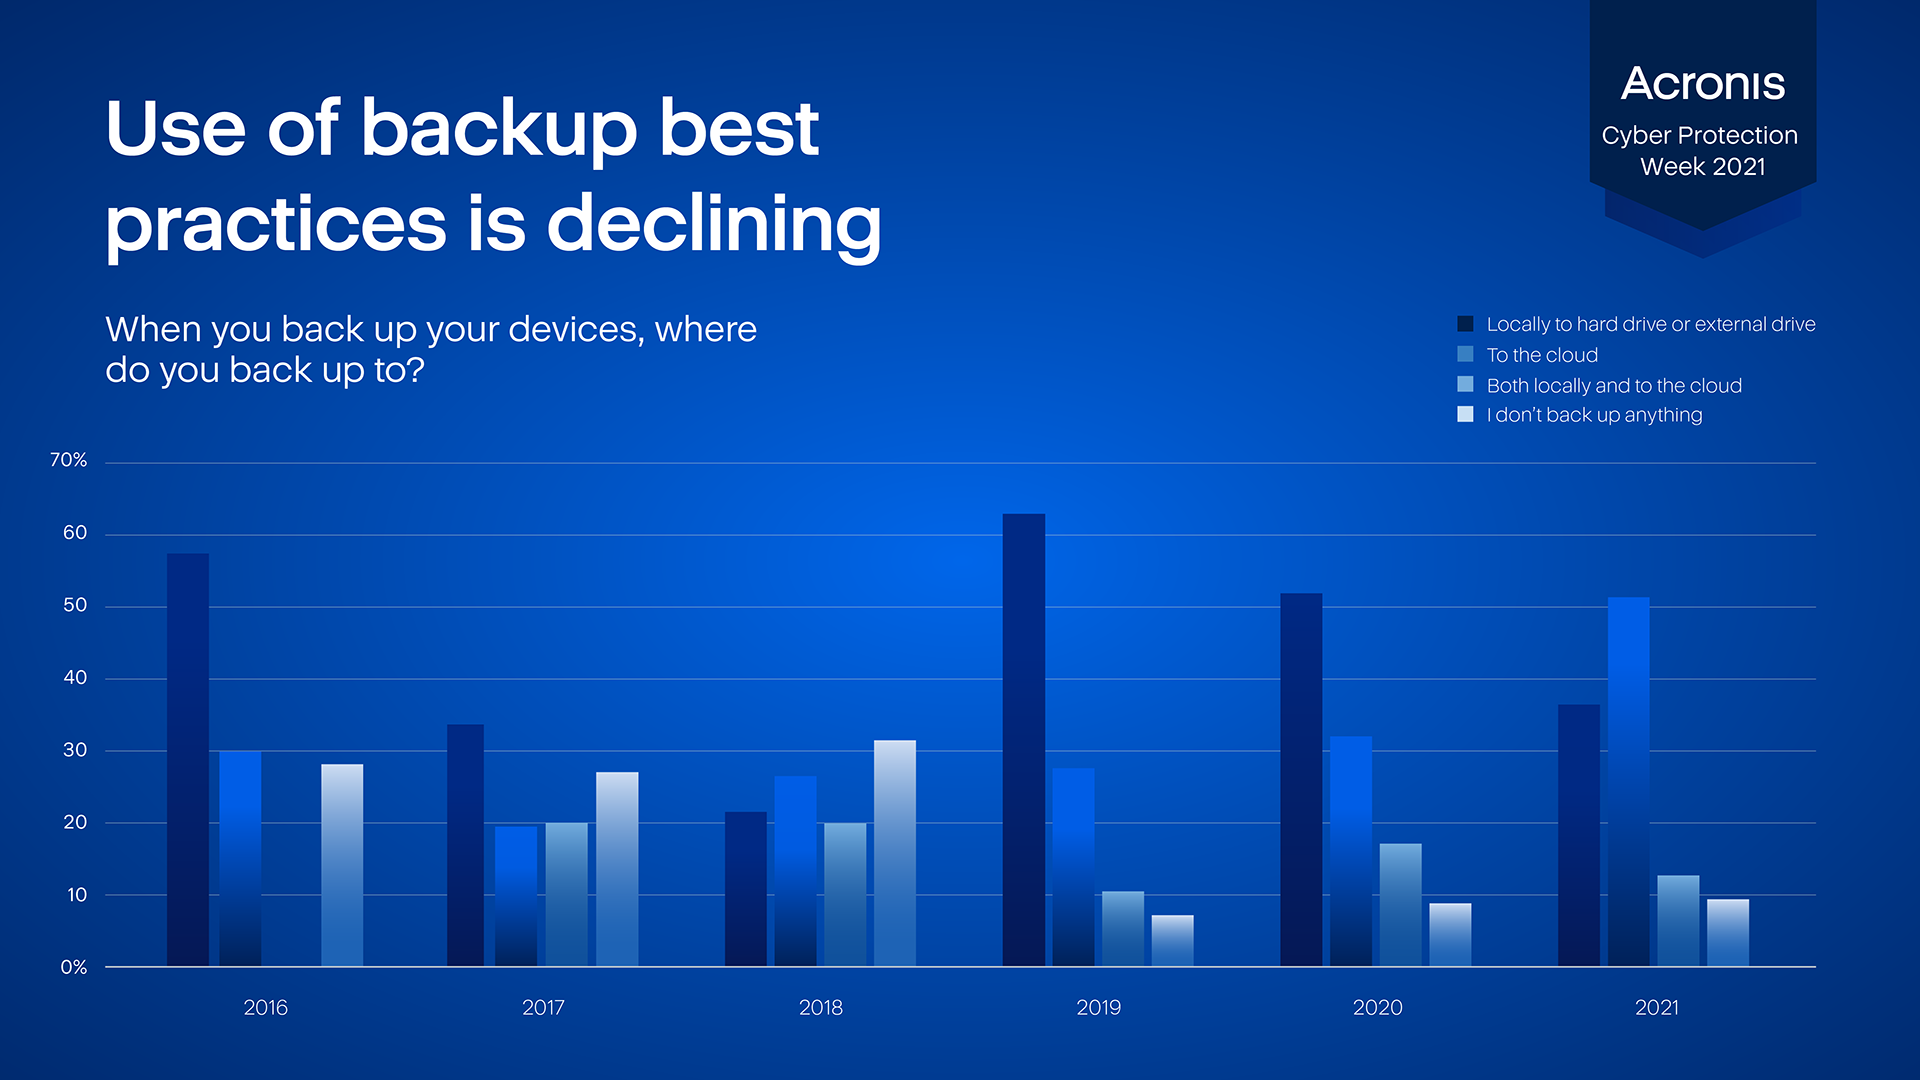 Use of data protection best practices among IT users is declining